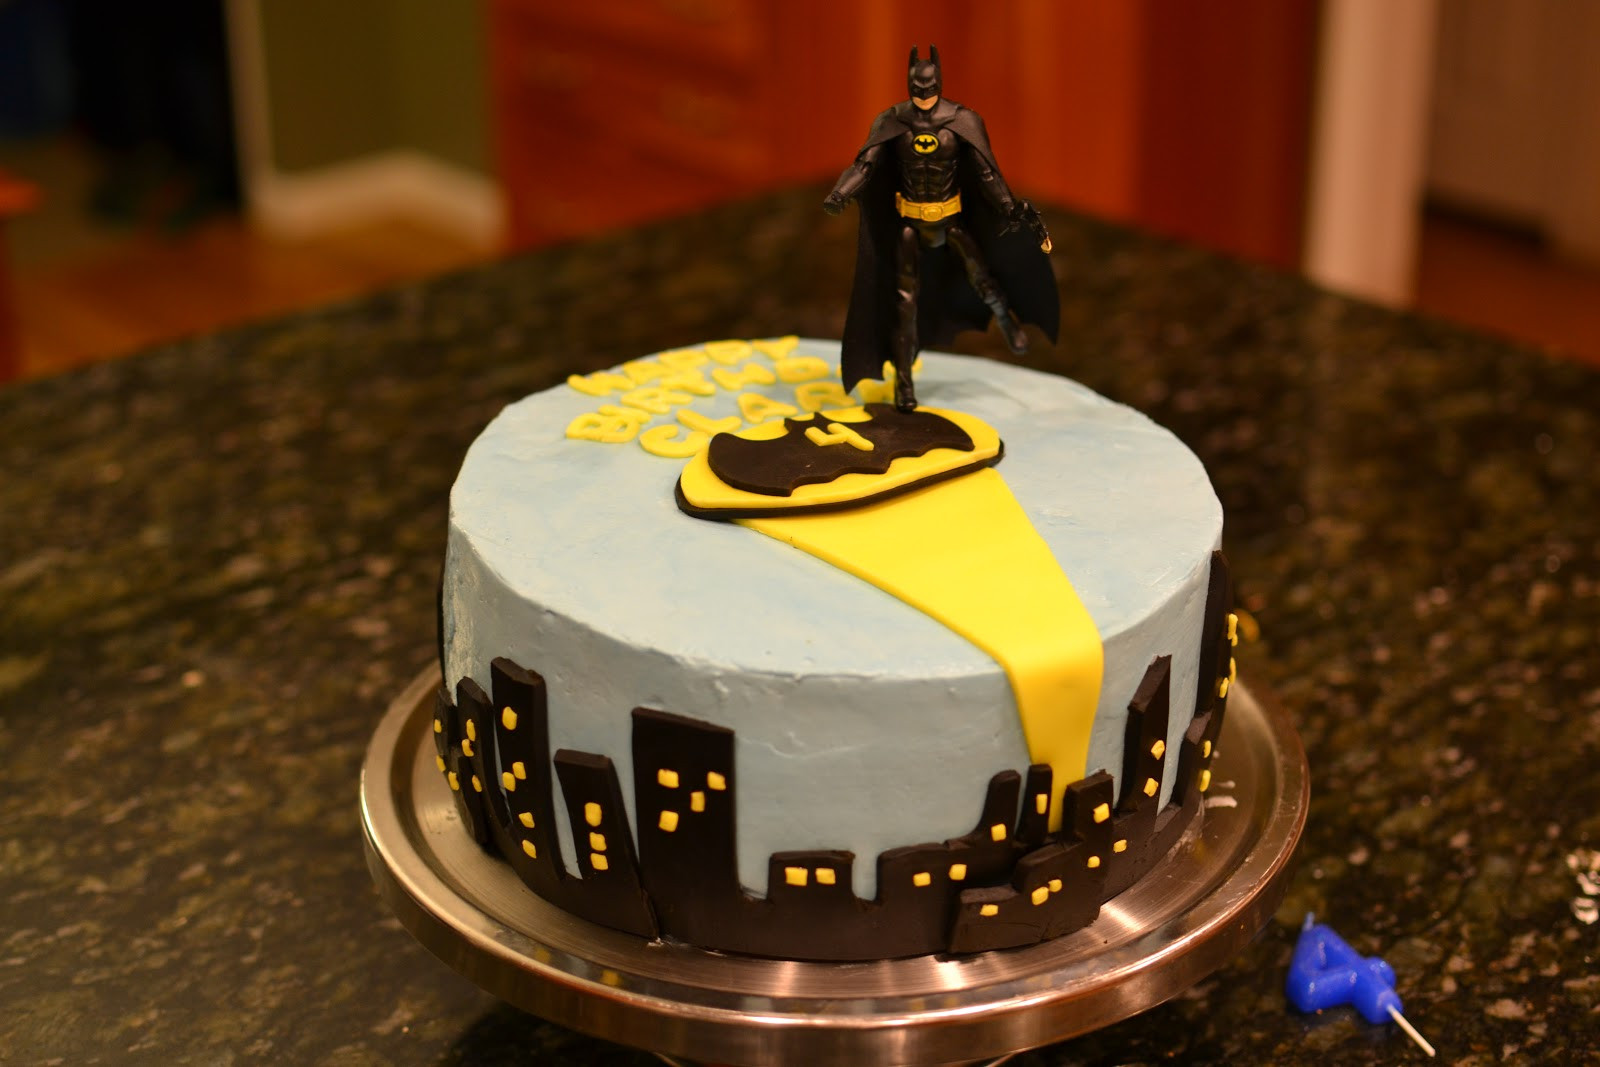 Best ideas about Batman Birthday Cake . Save or Pin Batman Birthday Cake and DIY No Sew Super Hero Capes Now.